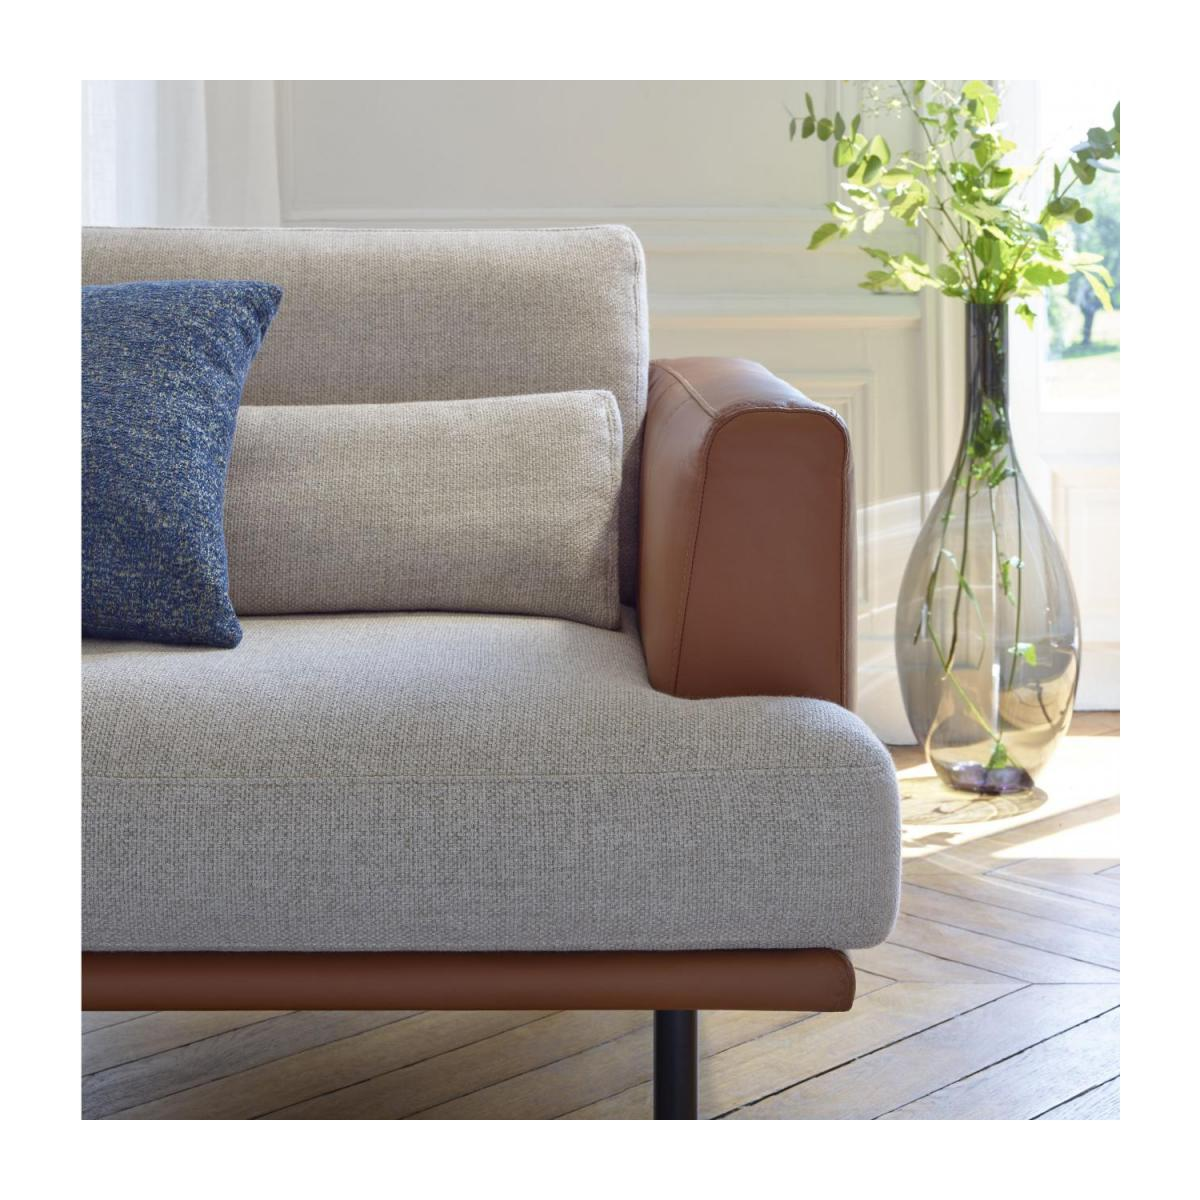 2-seter sofa Ancio river rock med base og vanger i brun skinn n°3